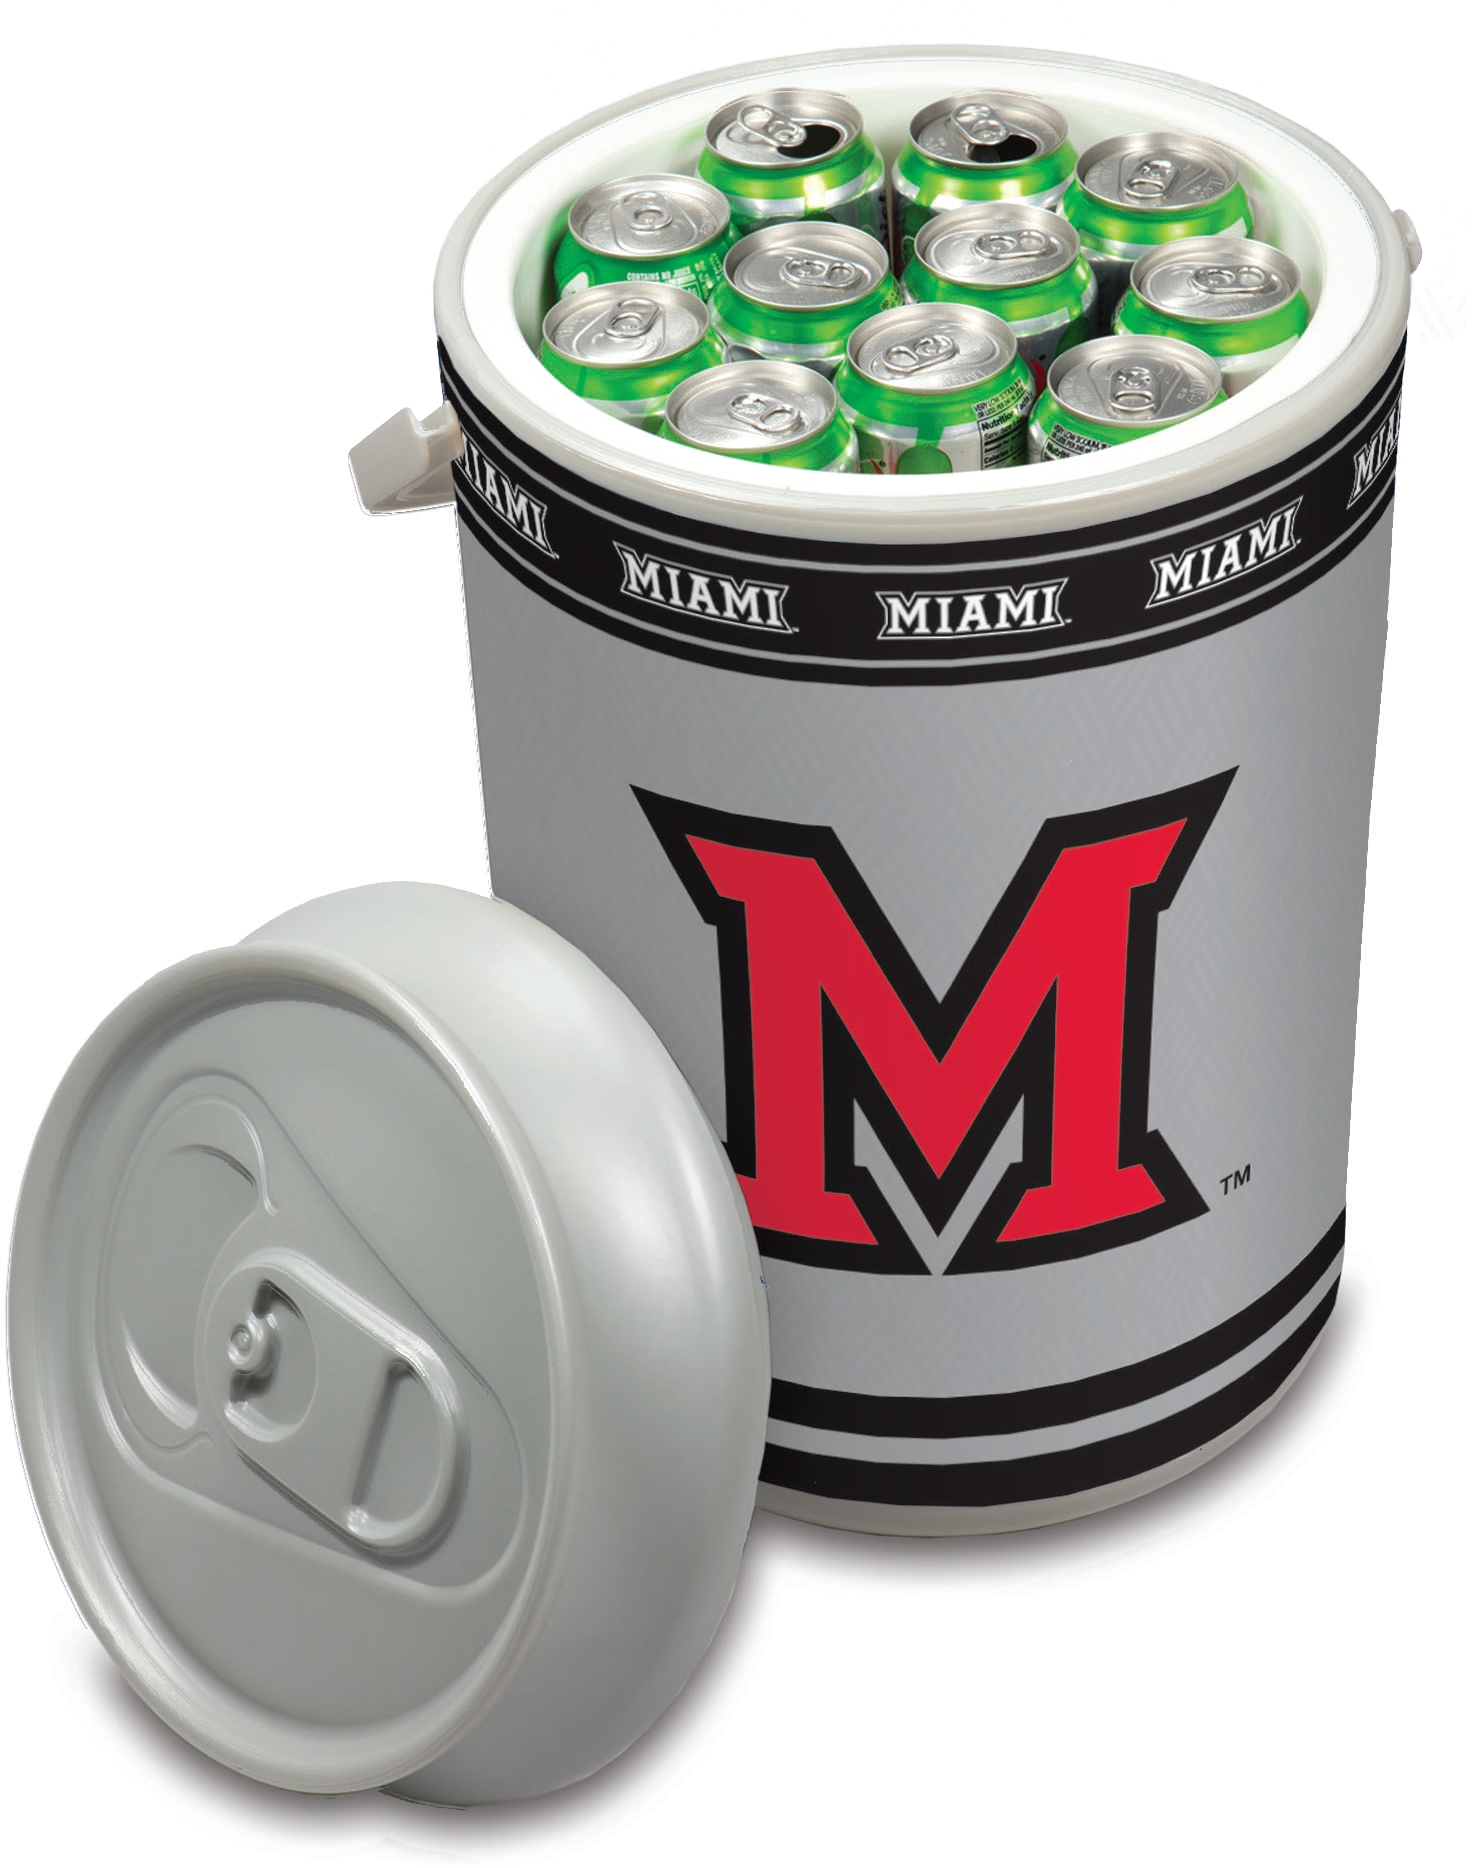 Picnic Time Miami University Redhawks Mega Can NCAA Insulated Cooler, 5 Gallon